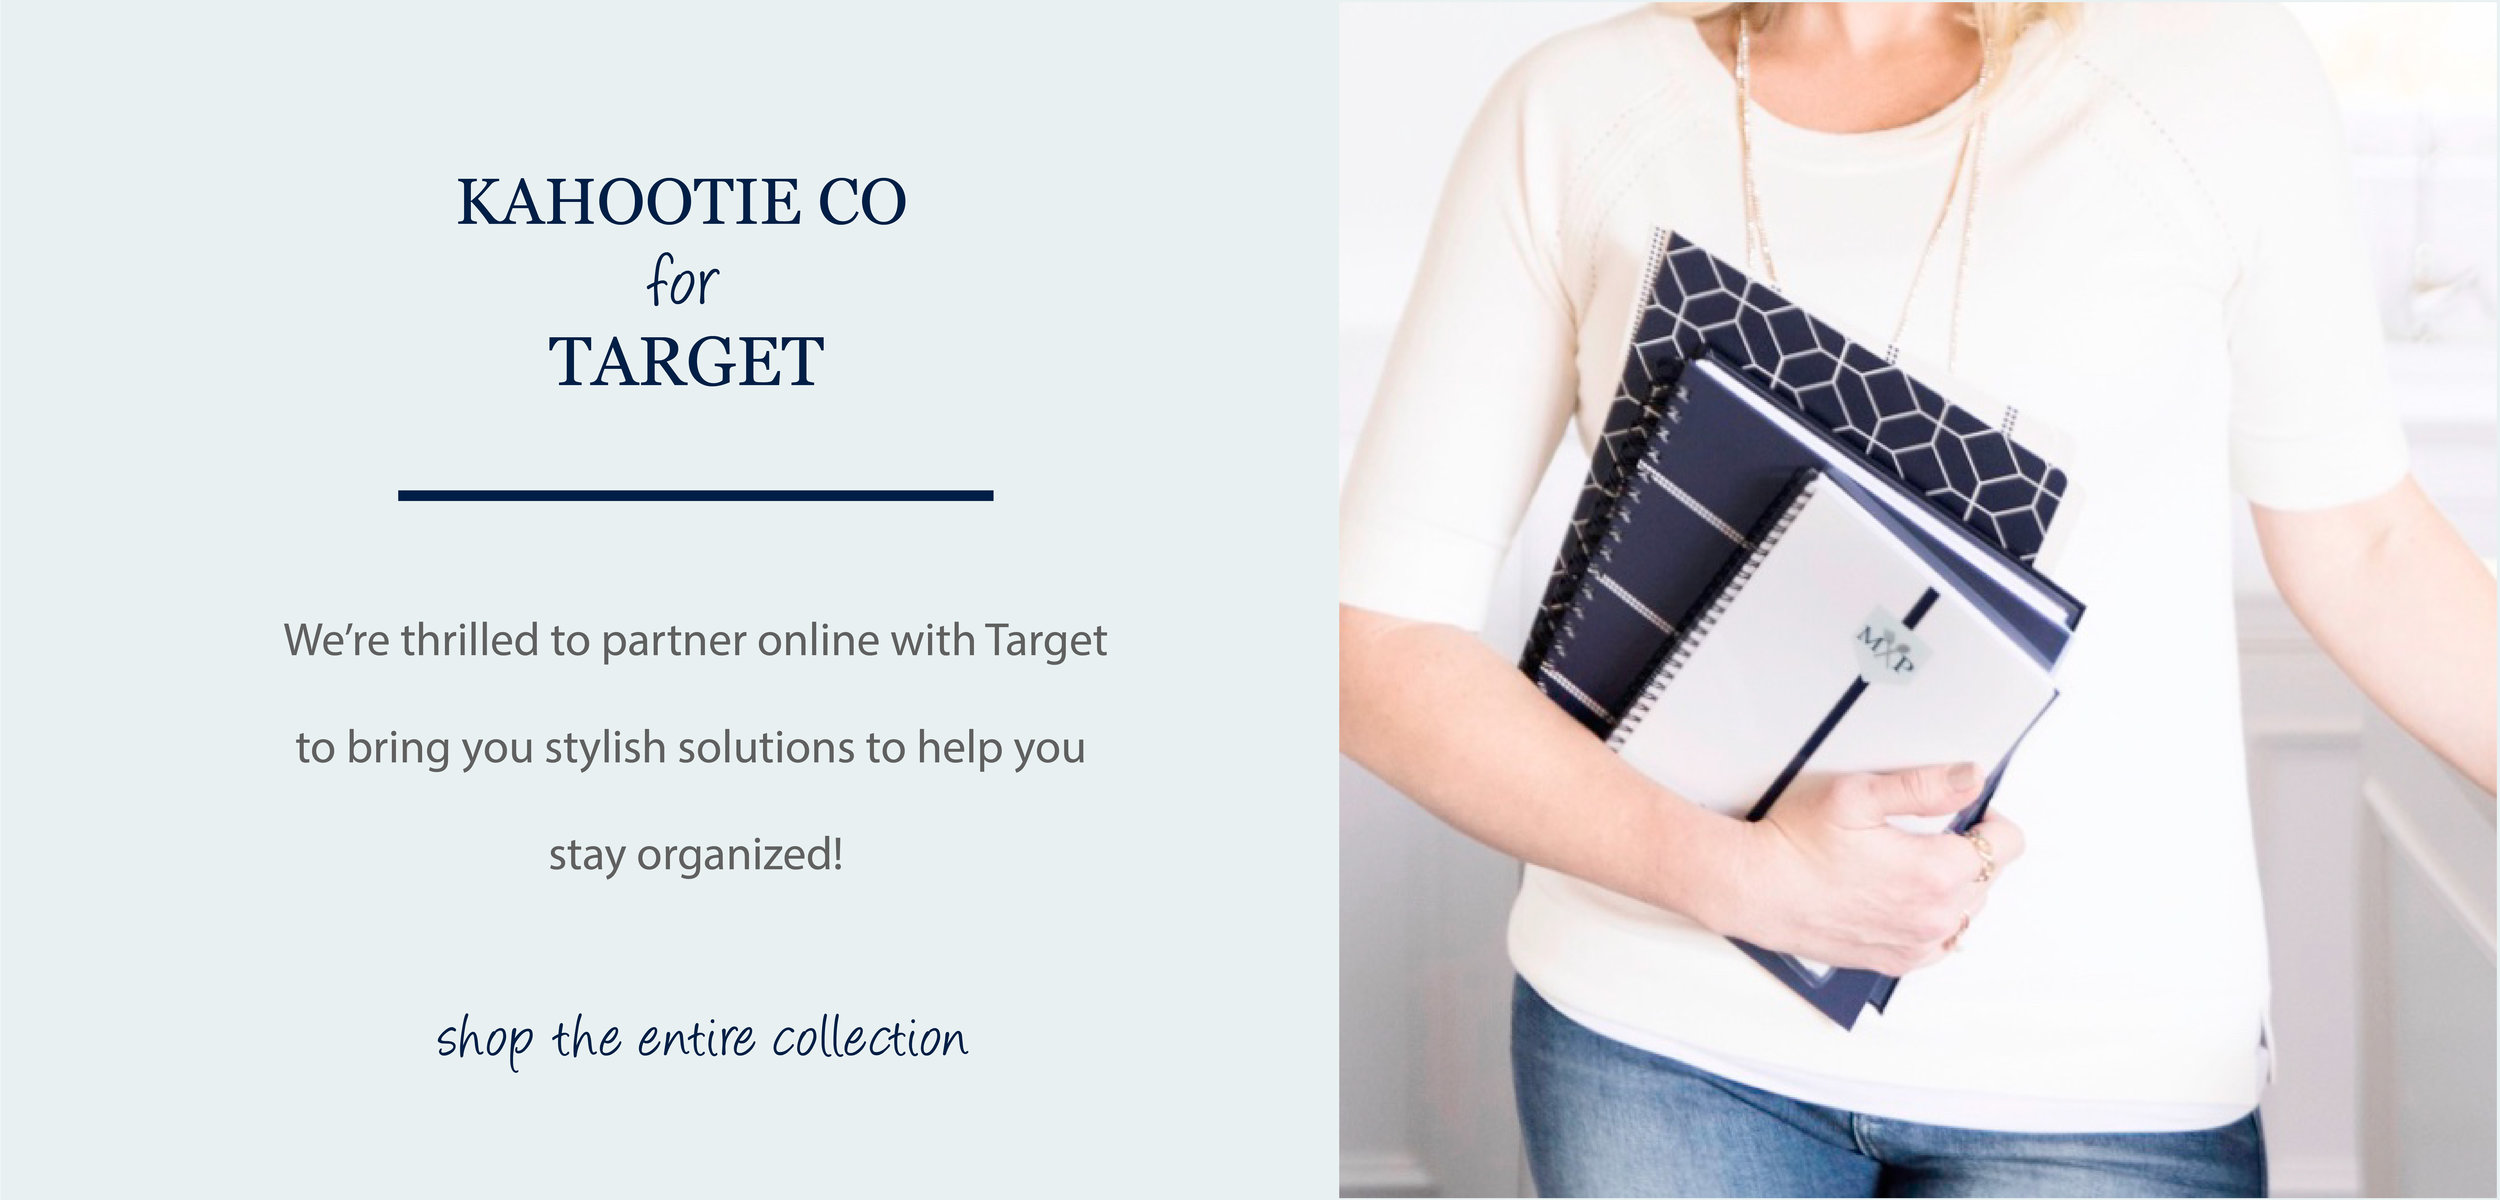 kahootie co for target